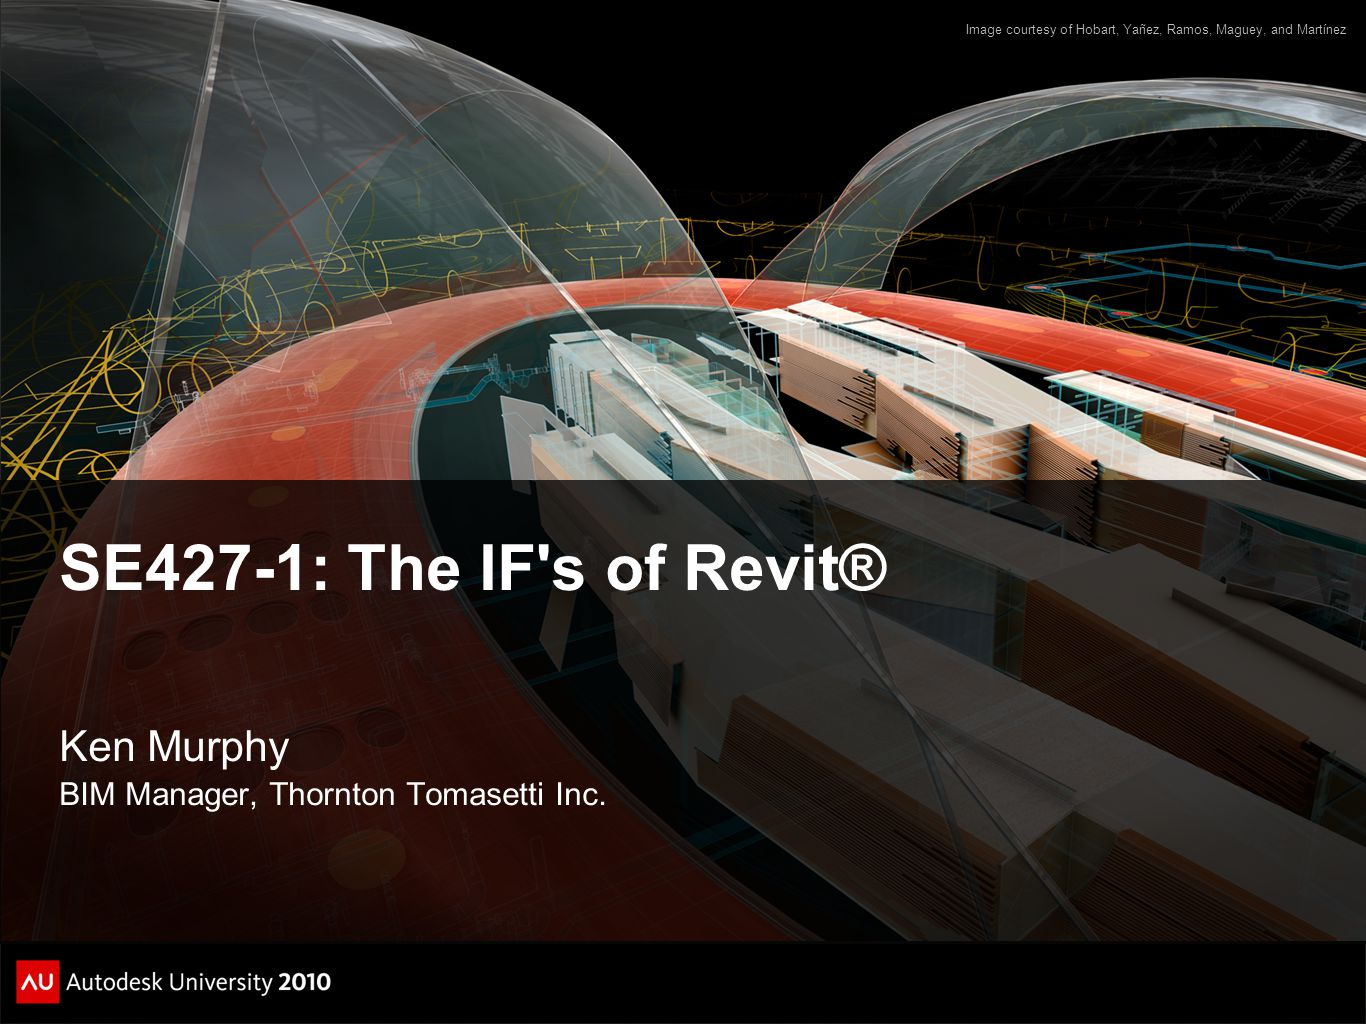 SE427-1: The IF s of Revit® Ken Murphy